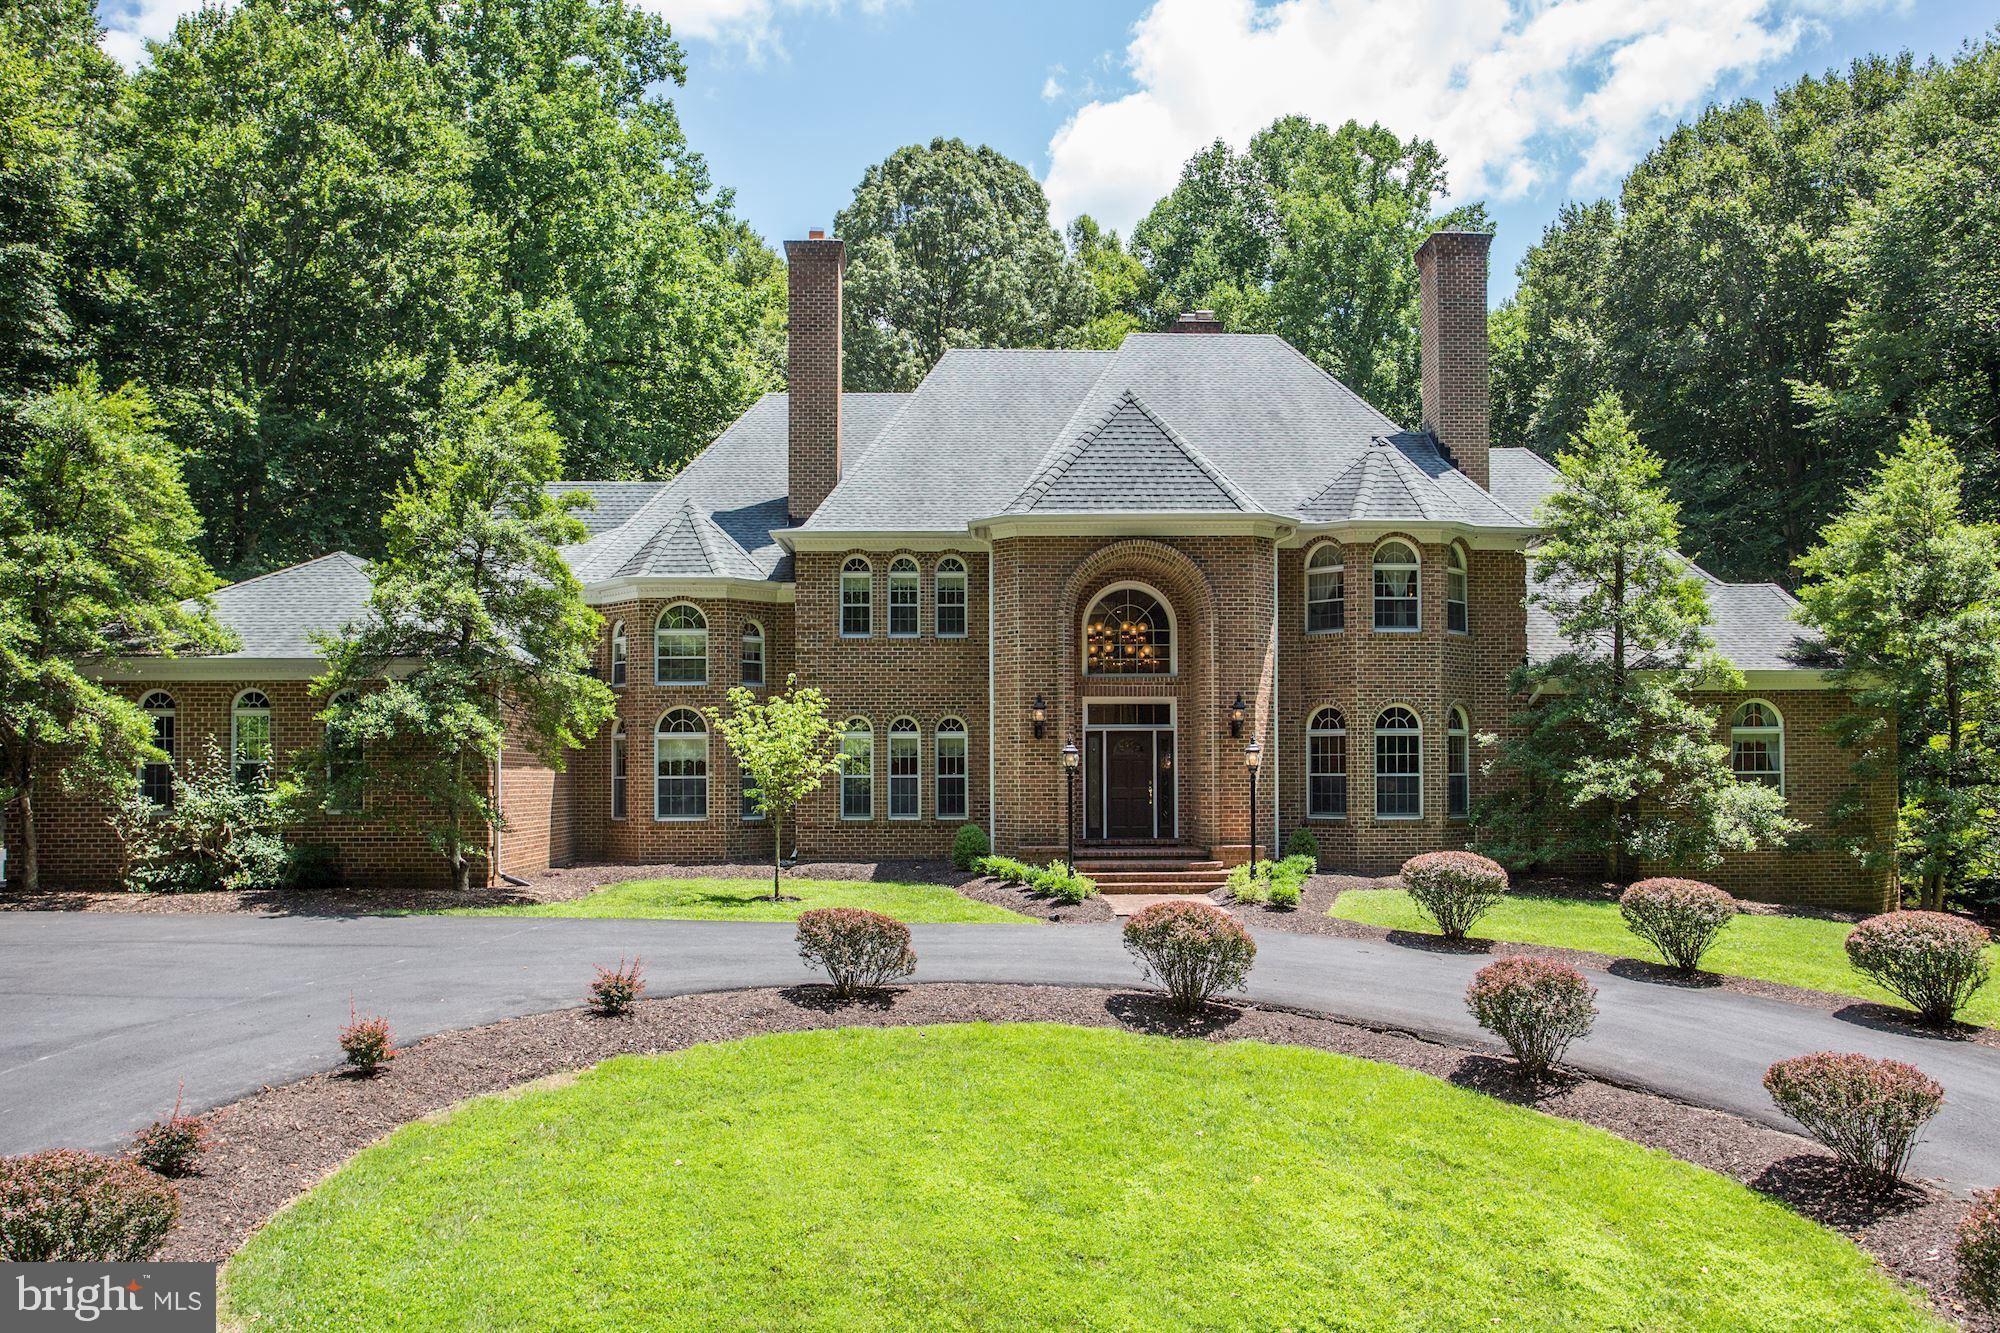 167 Yarnick Road is a remarkable and beautifully crafted Country Manor that echoes the influence of